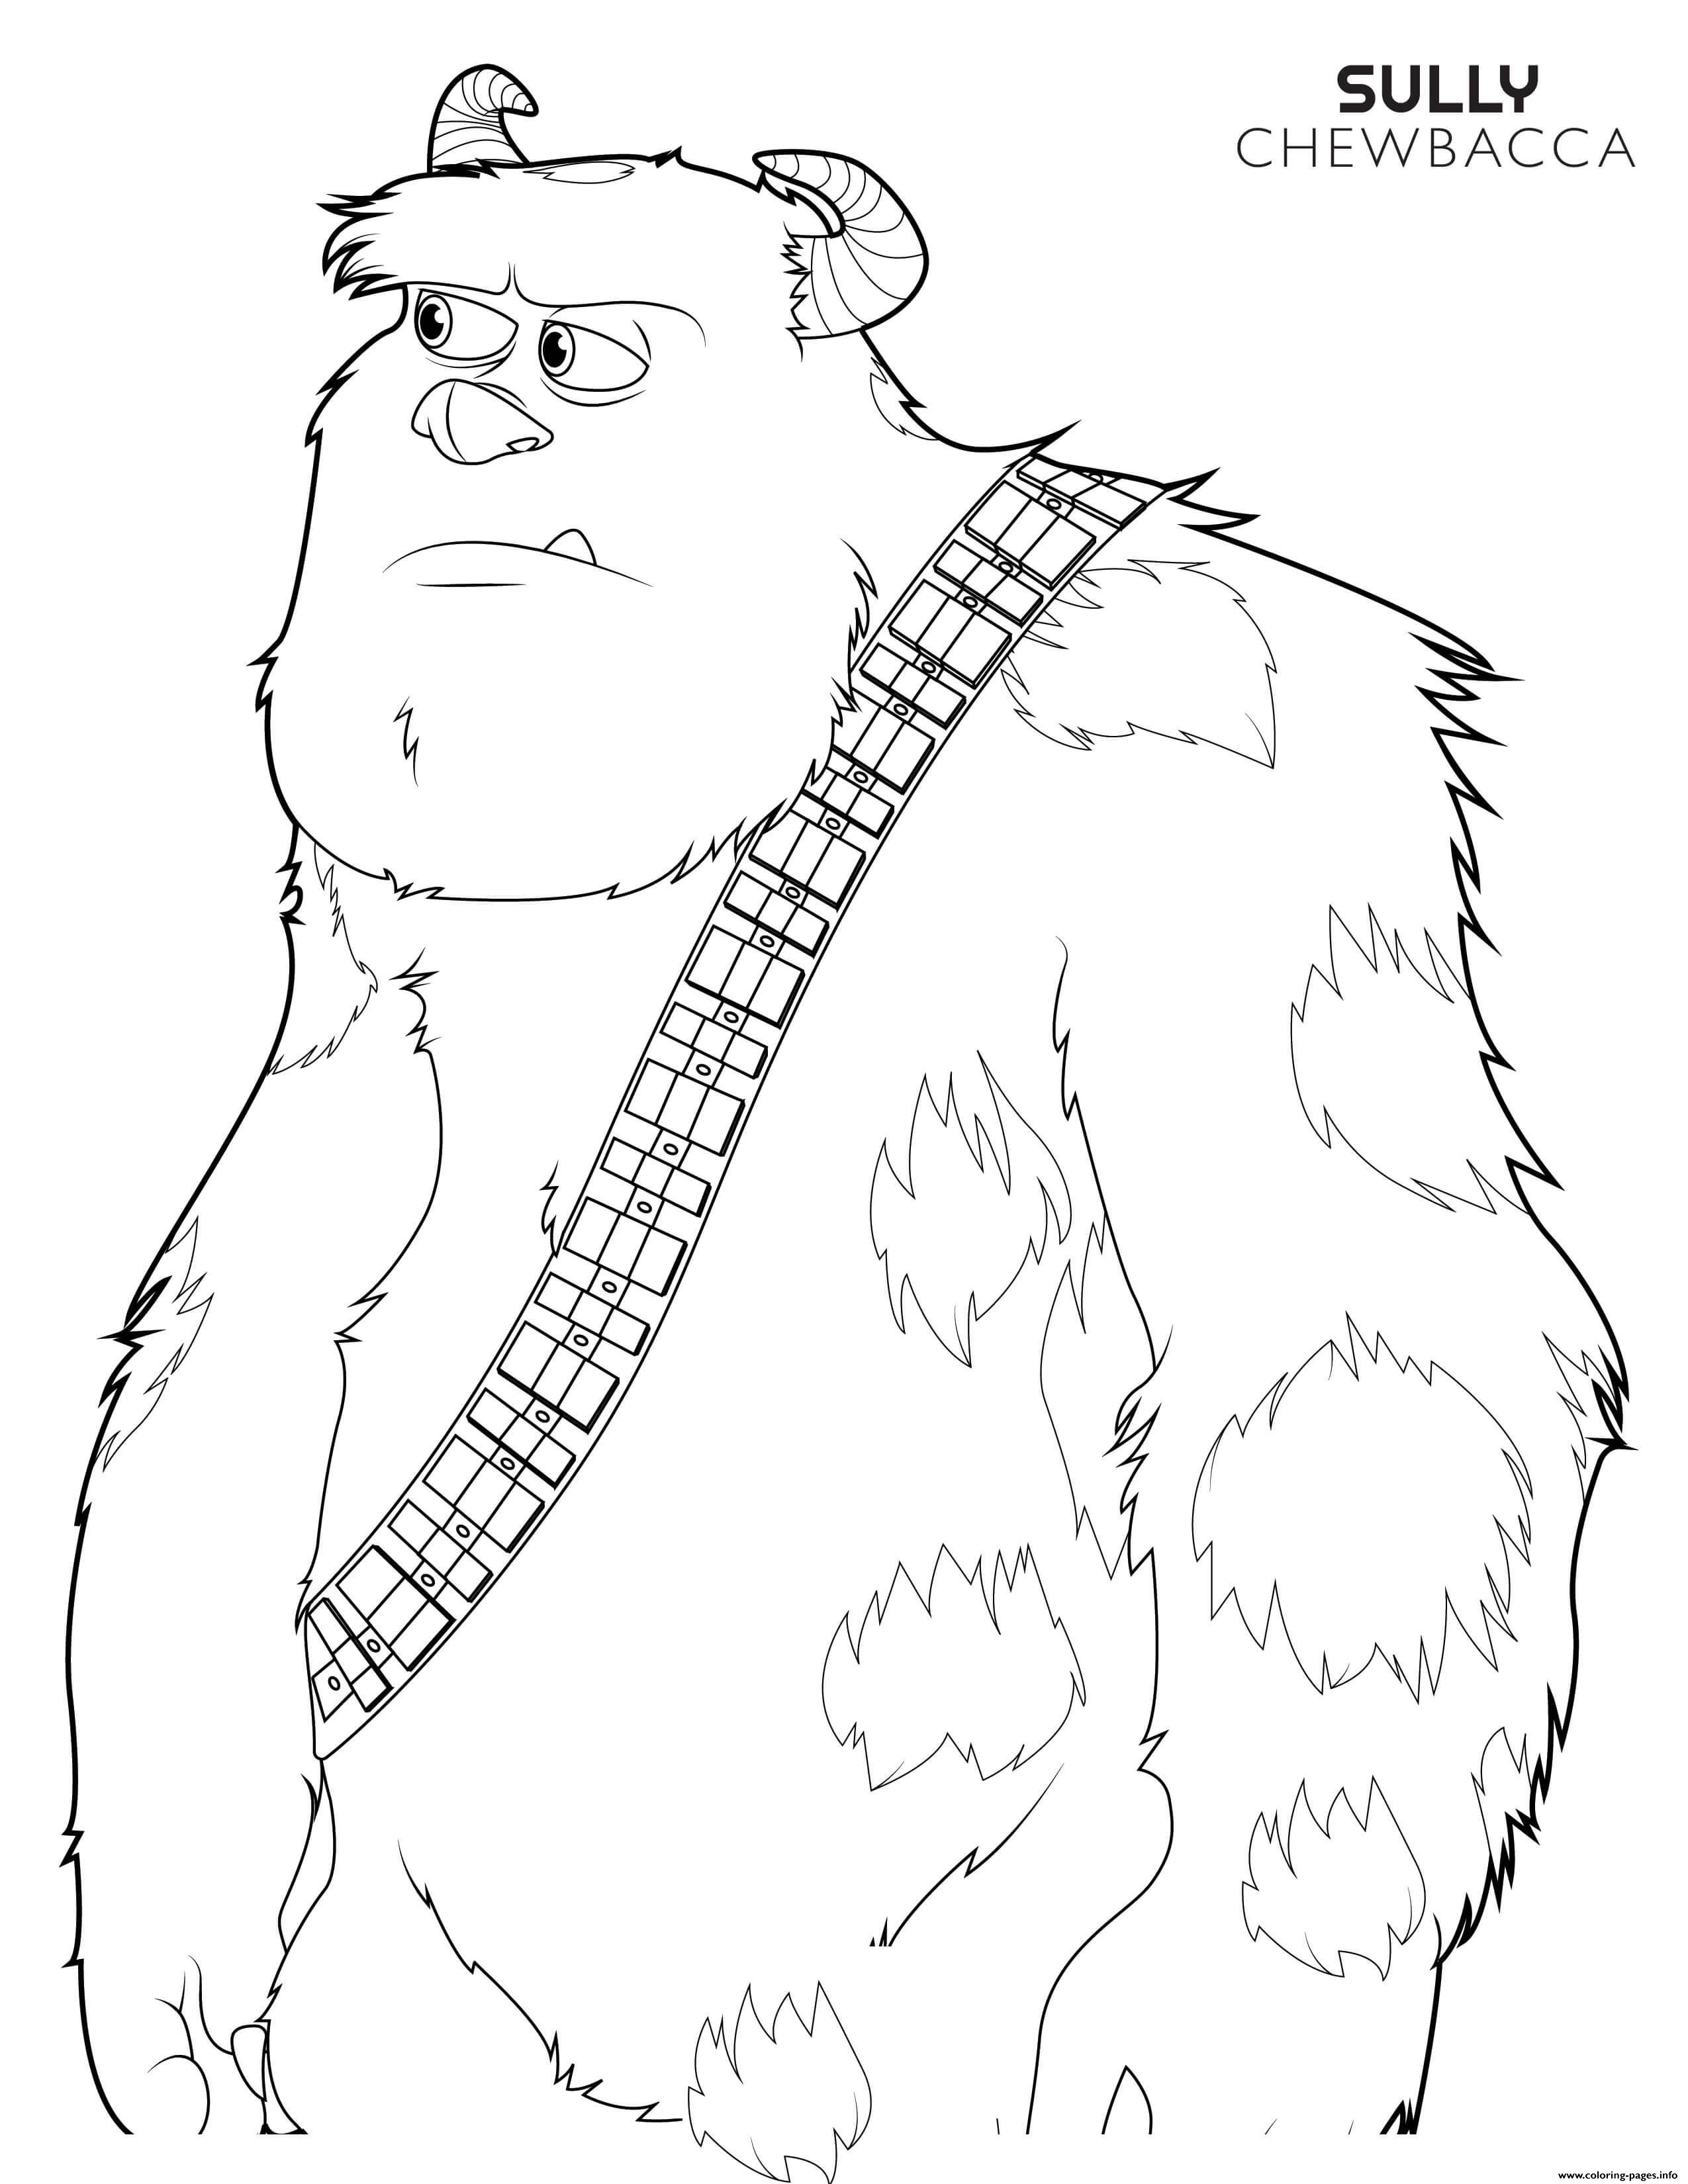 Chewbacca Sulley Disney Star Wars coloring pages